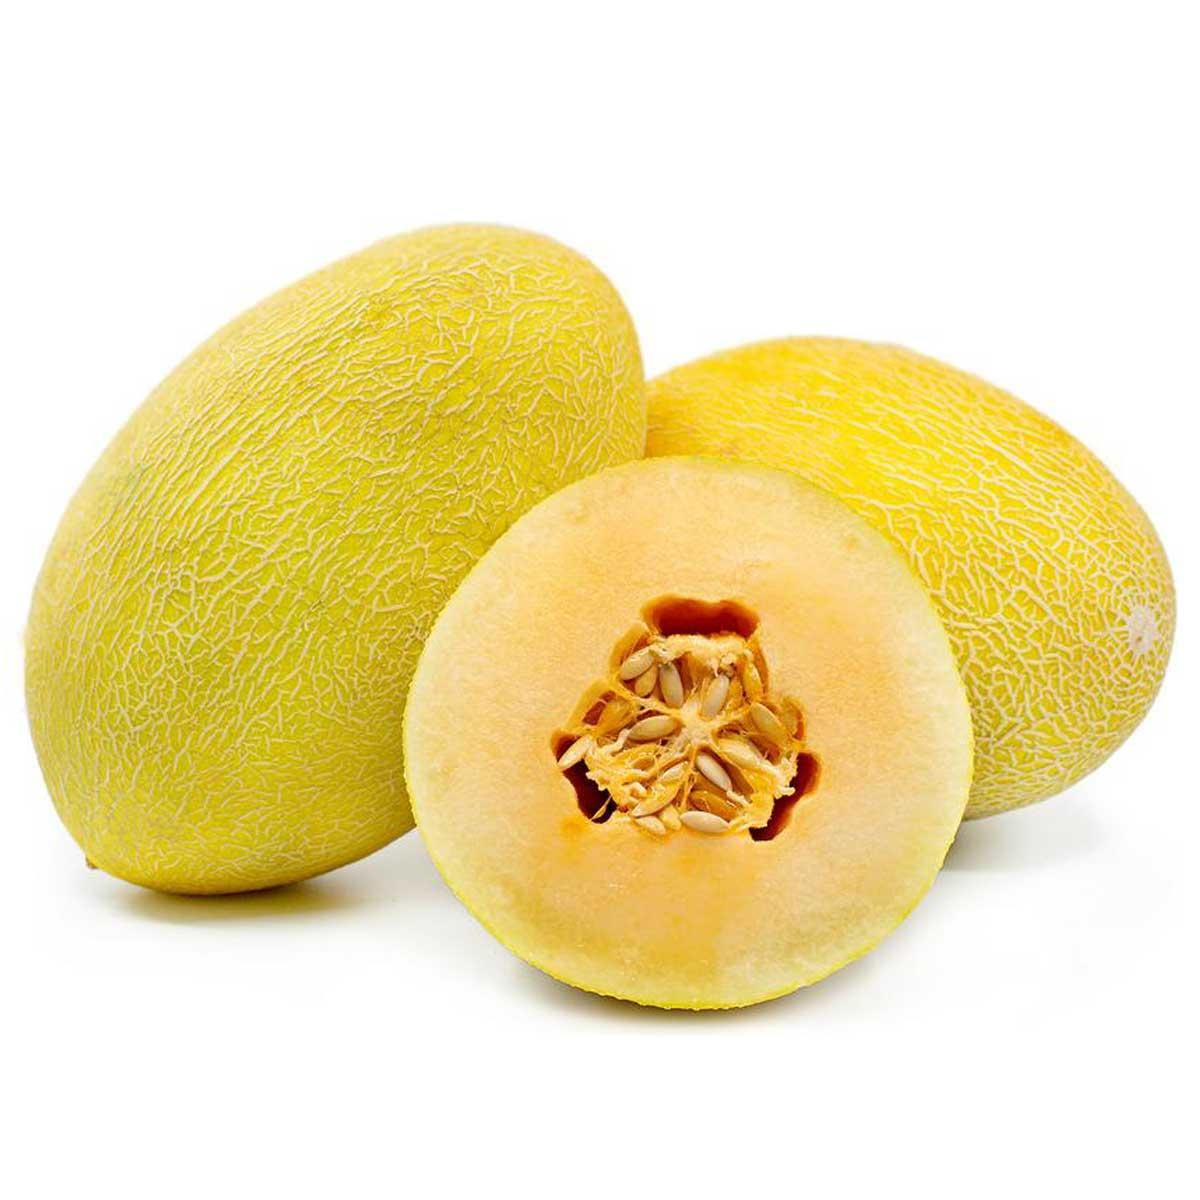 Sweet Melon Iran